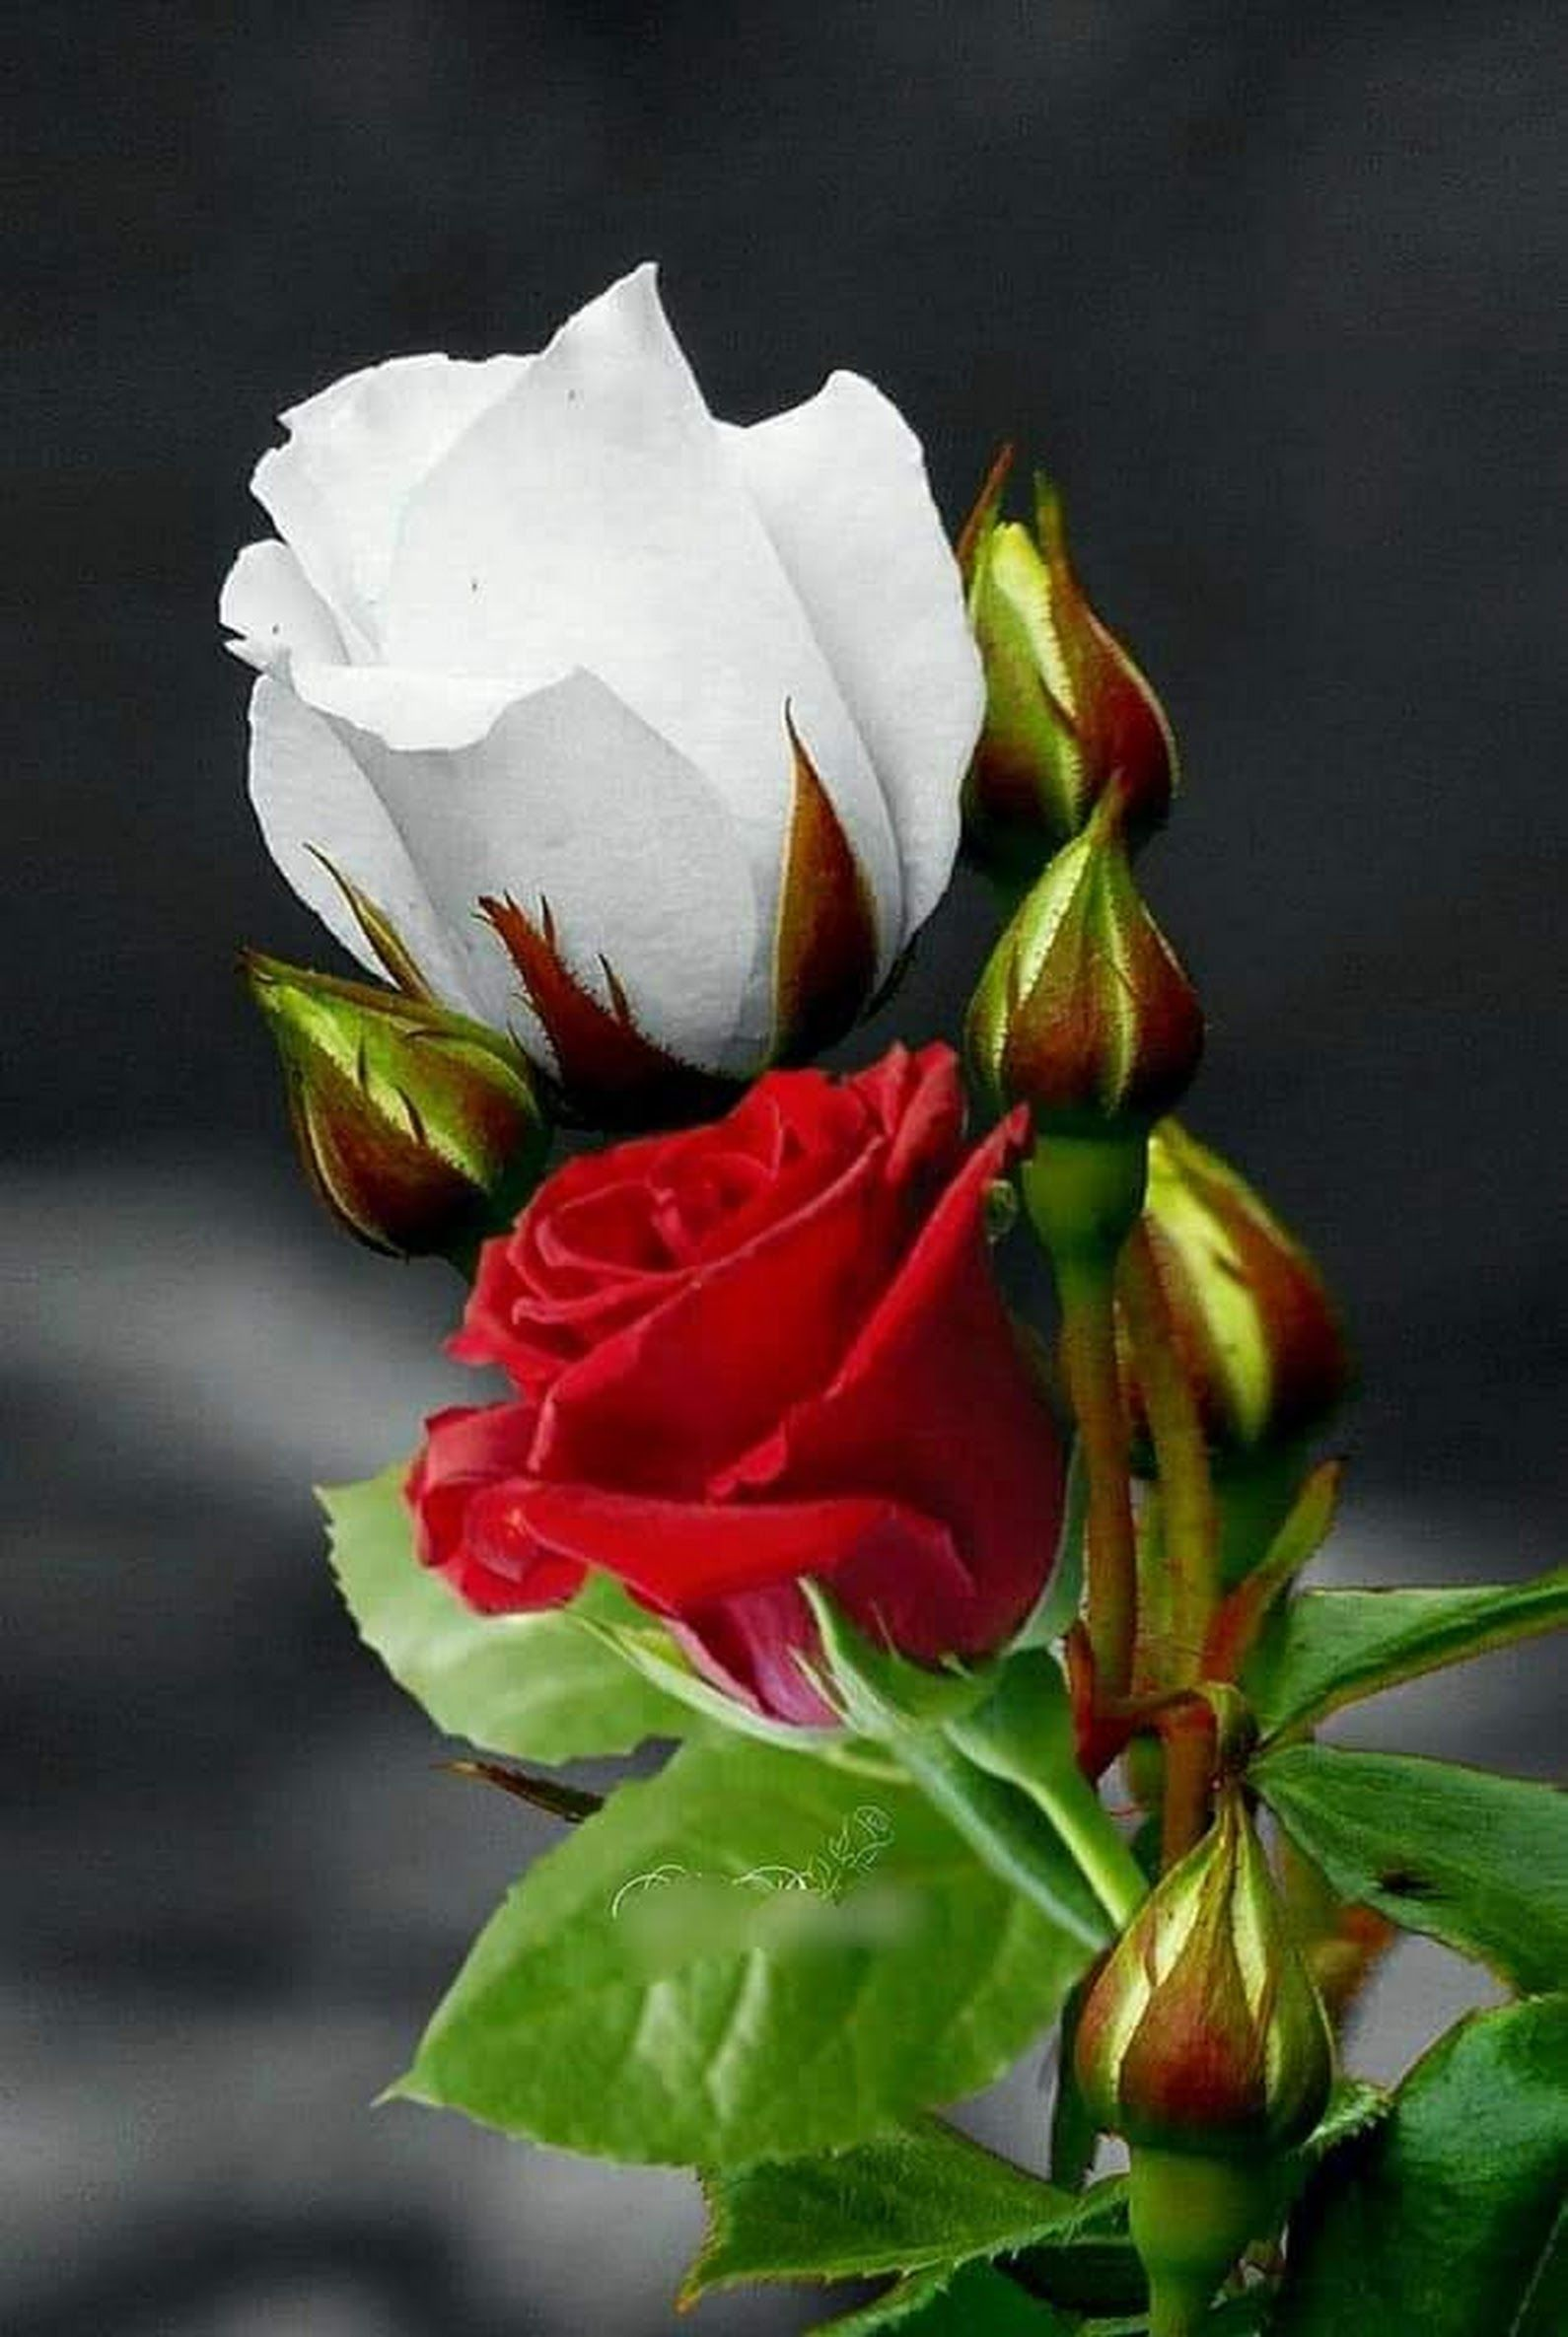 Red Means A Loving Heart Up To Sacrifice White Means A Pure